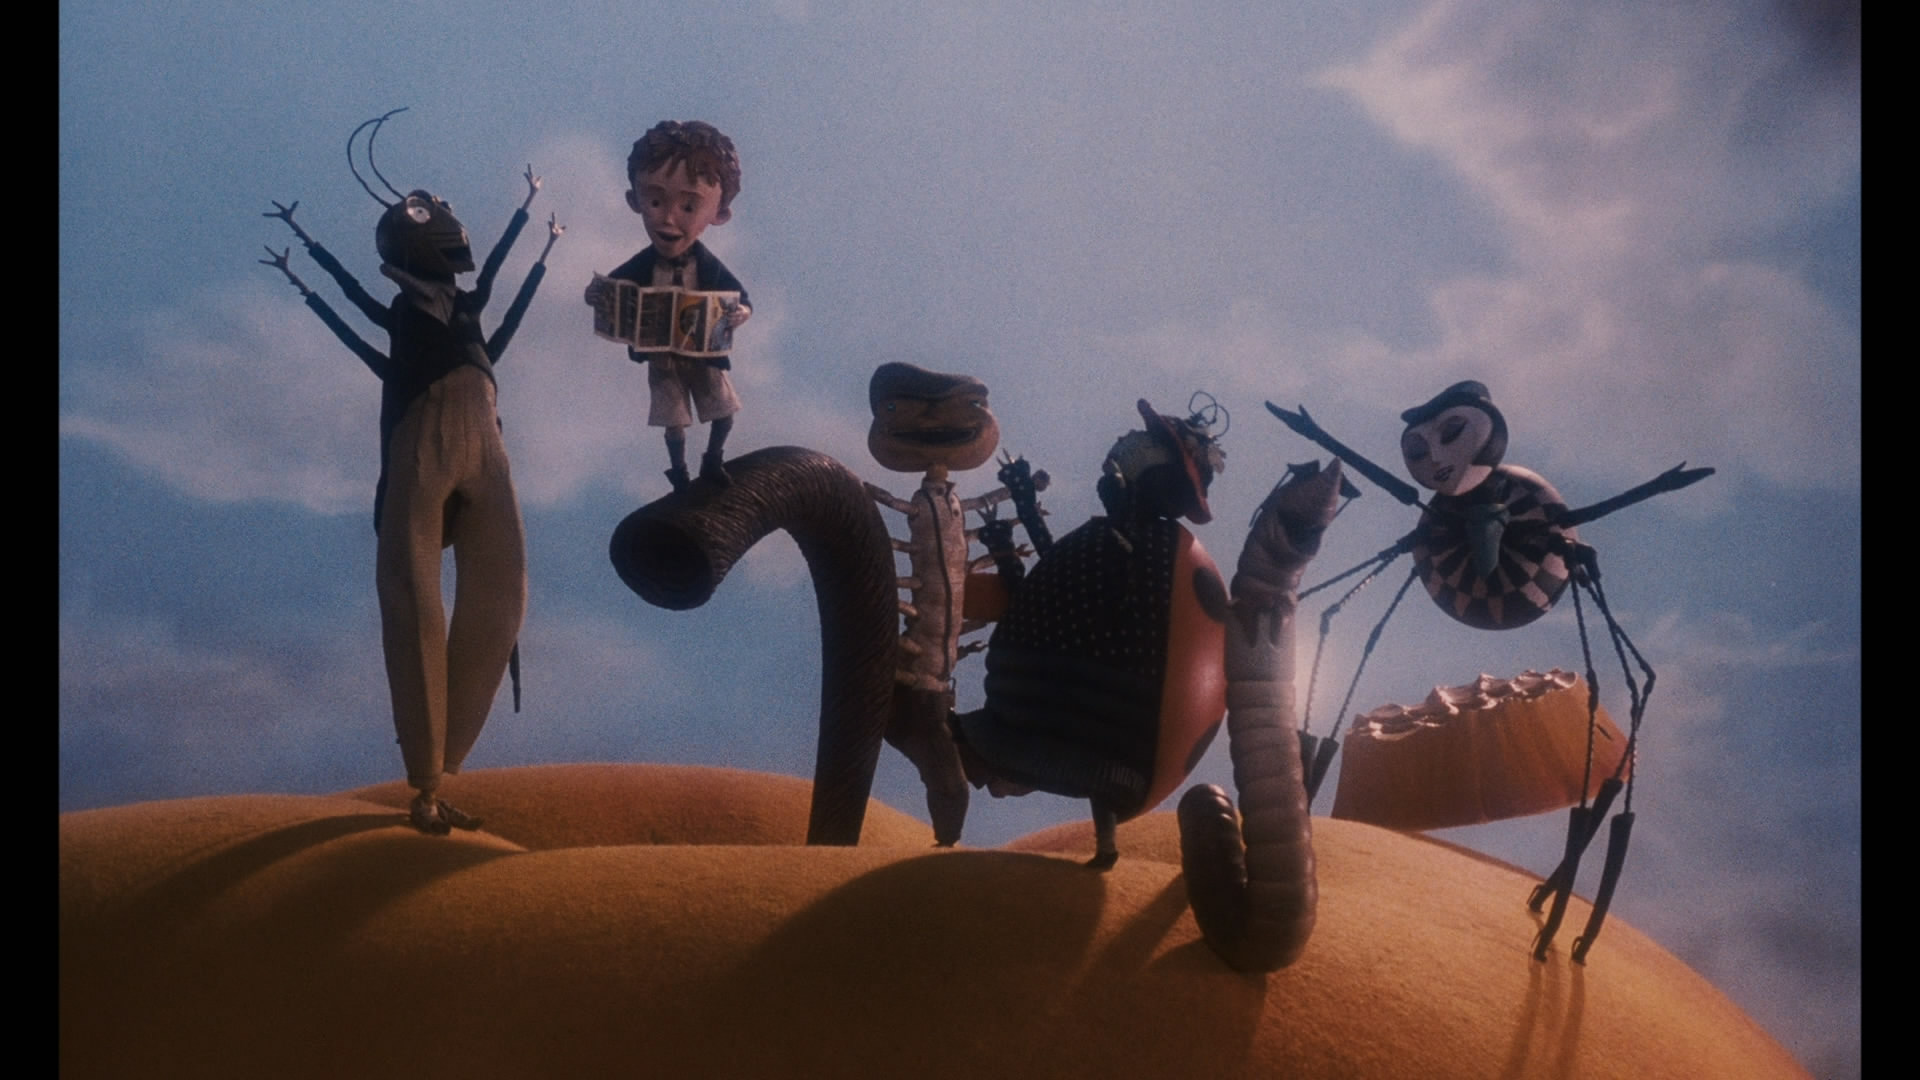 james and the giant peach Although he passed away in 1990, his popularity continues to increase as his fantastic novels, including james and the giant peach, matilda, the bfg, and charlie and the chocolate factory, delight an ever-growing legion of fans.